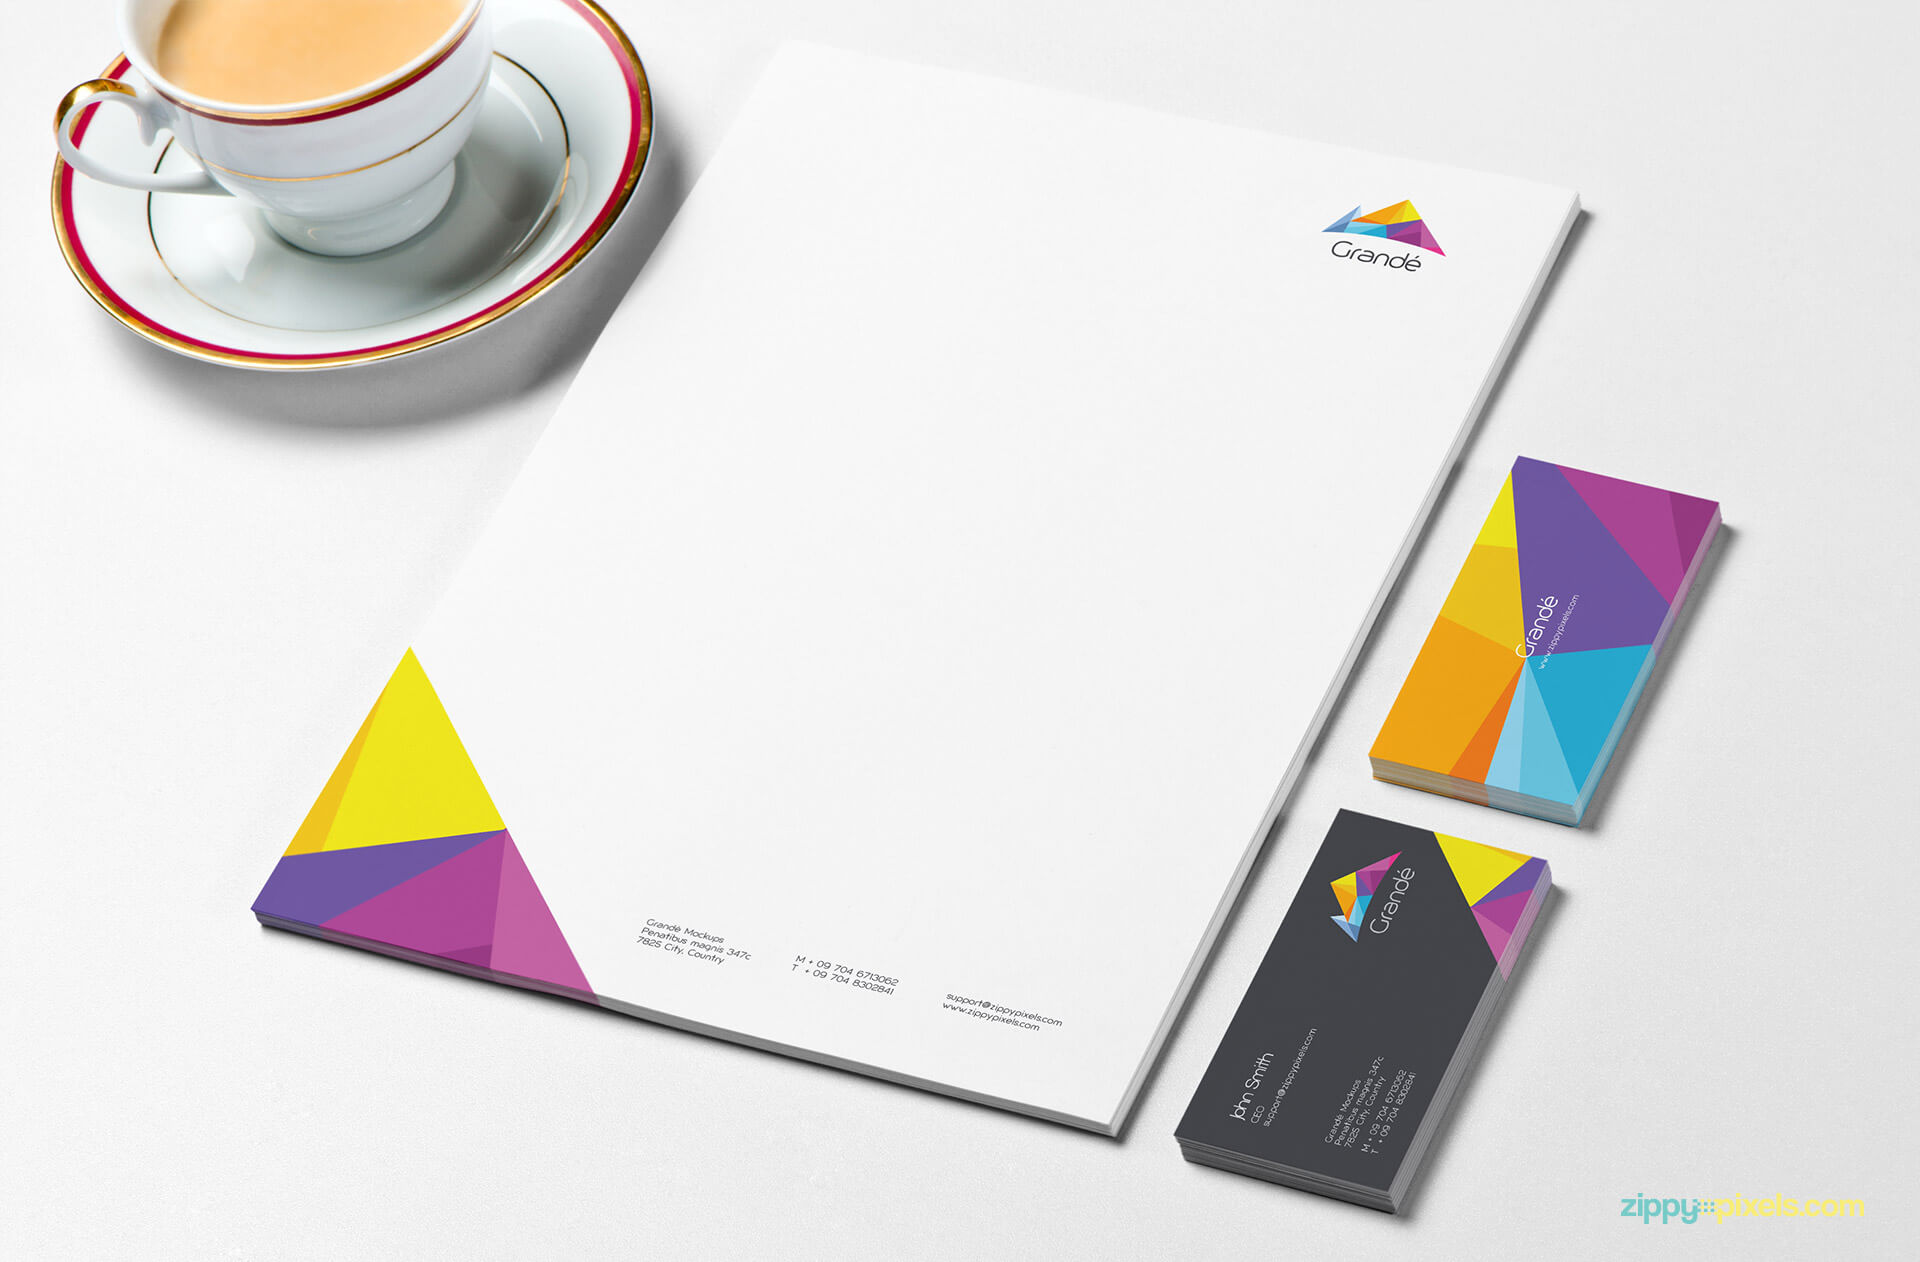 Stationery Mockup of Letterhead and Business Cards